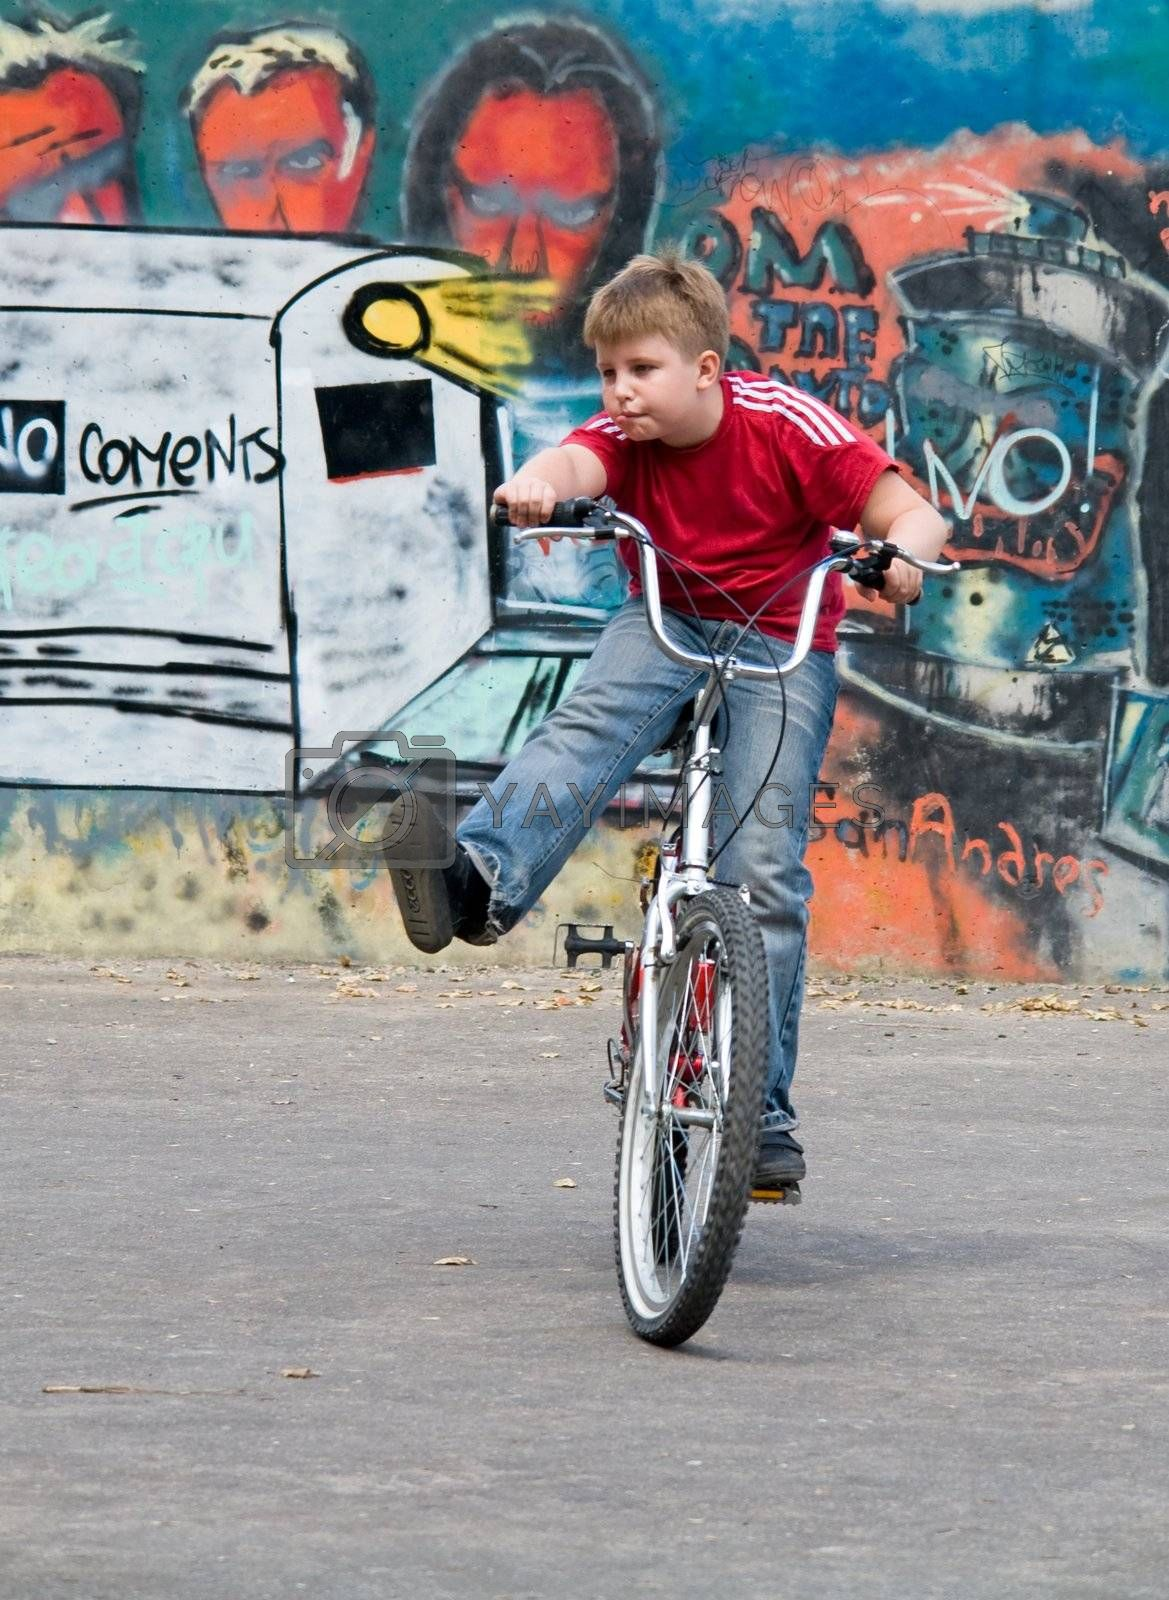 boy on a bicycle with graffiti at background